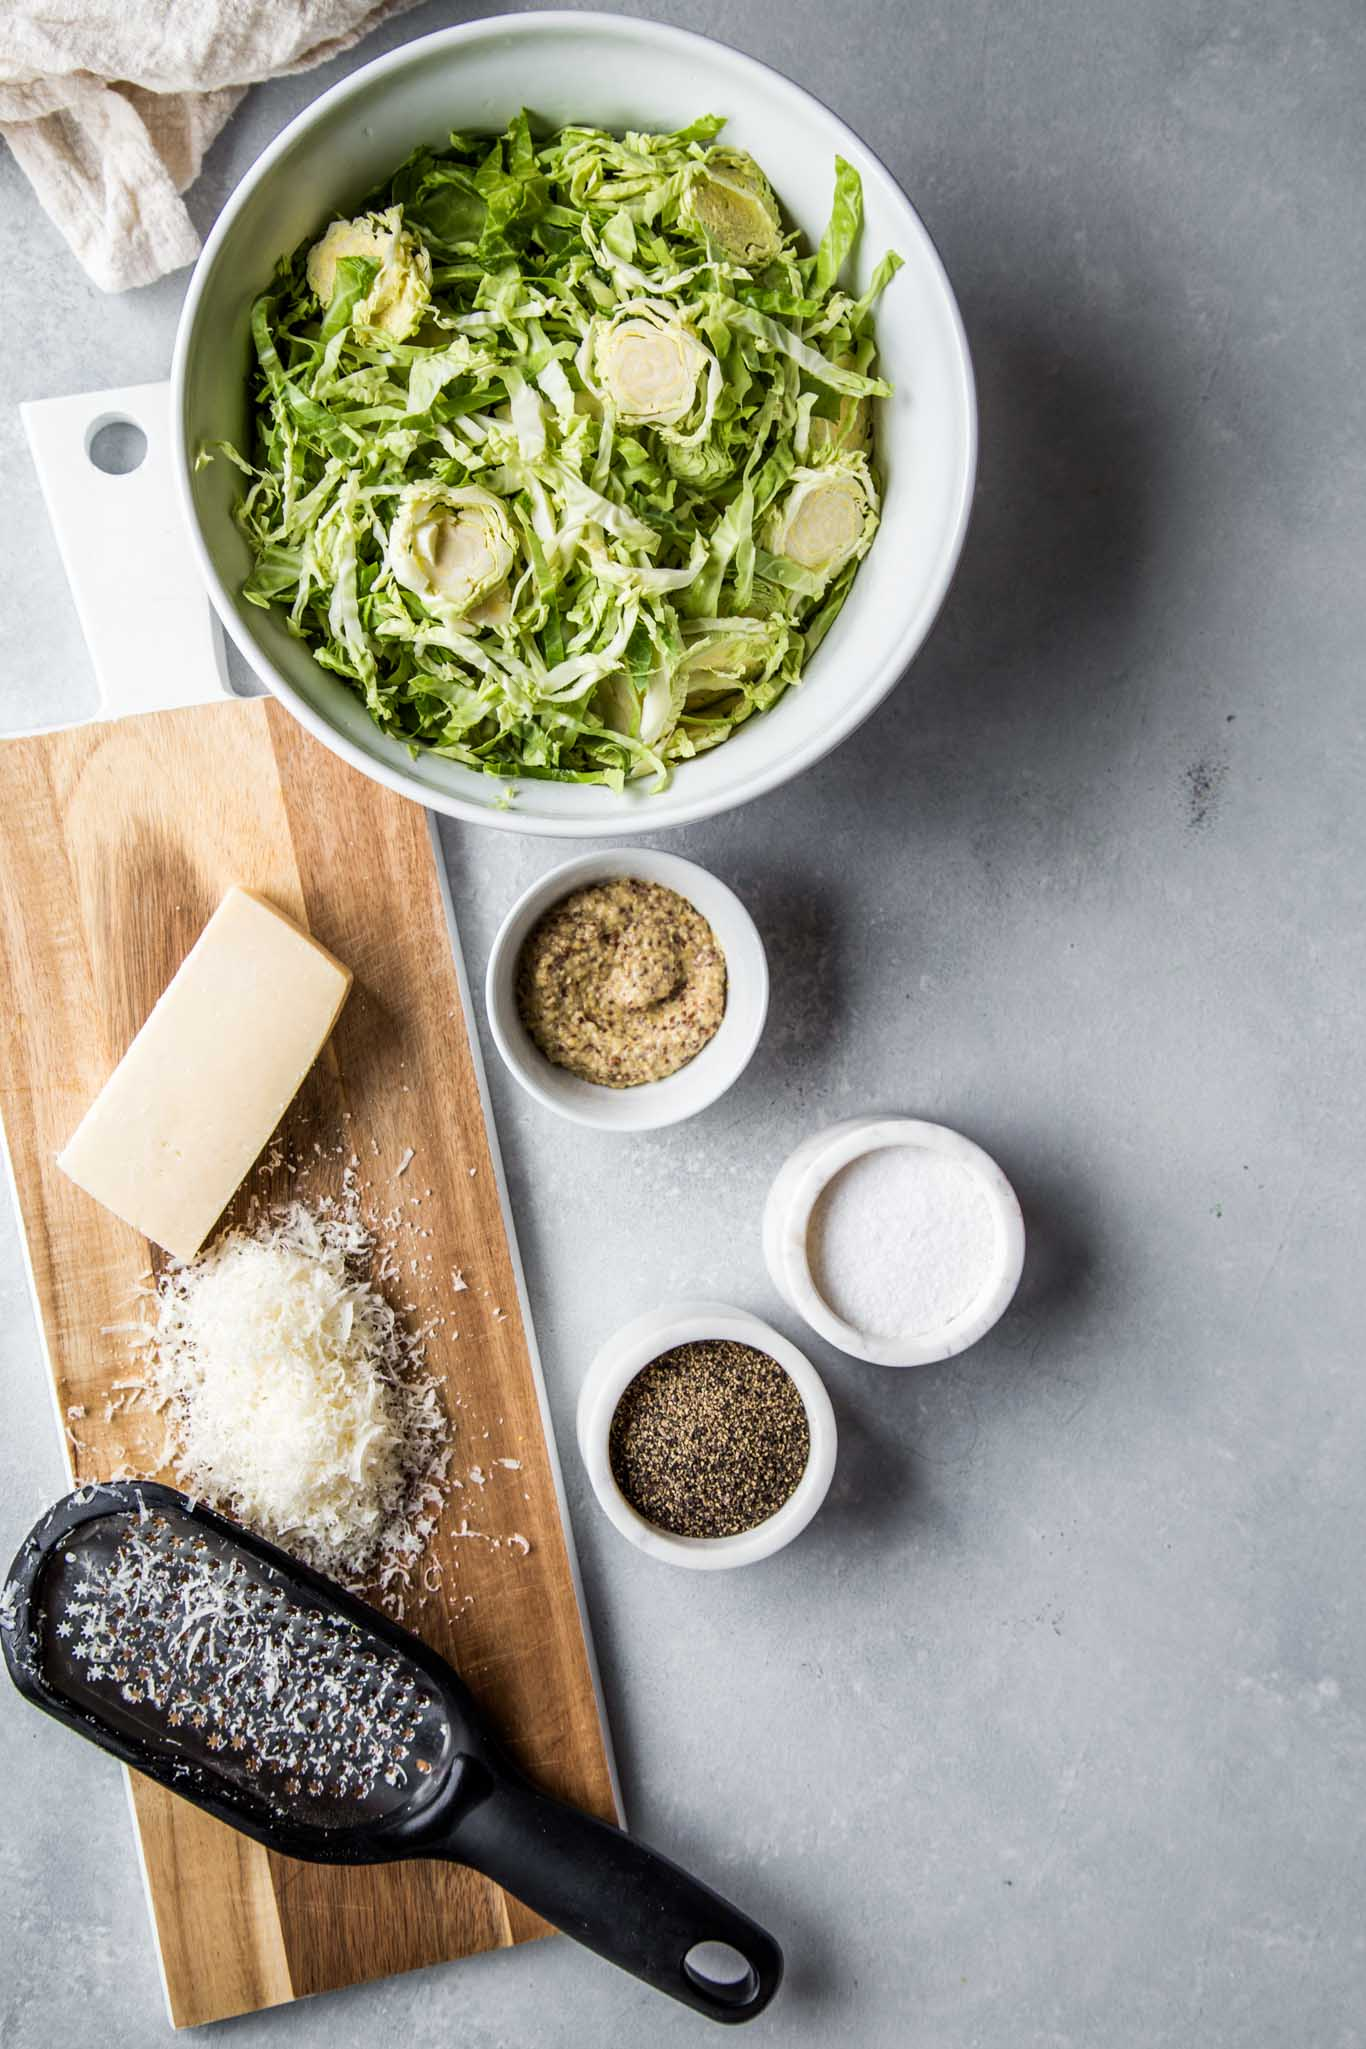 Ingredients for shaved brussels sprouts salad with mustard and parmesan